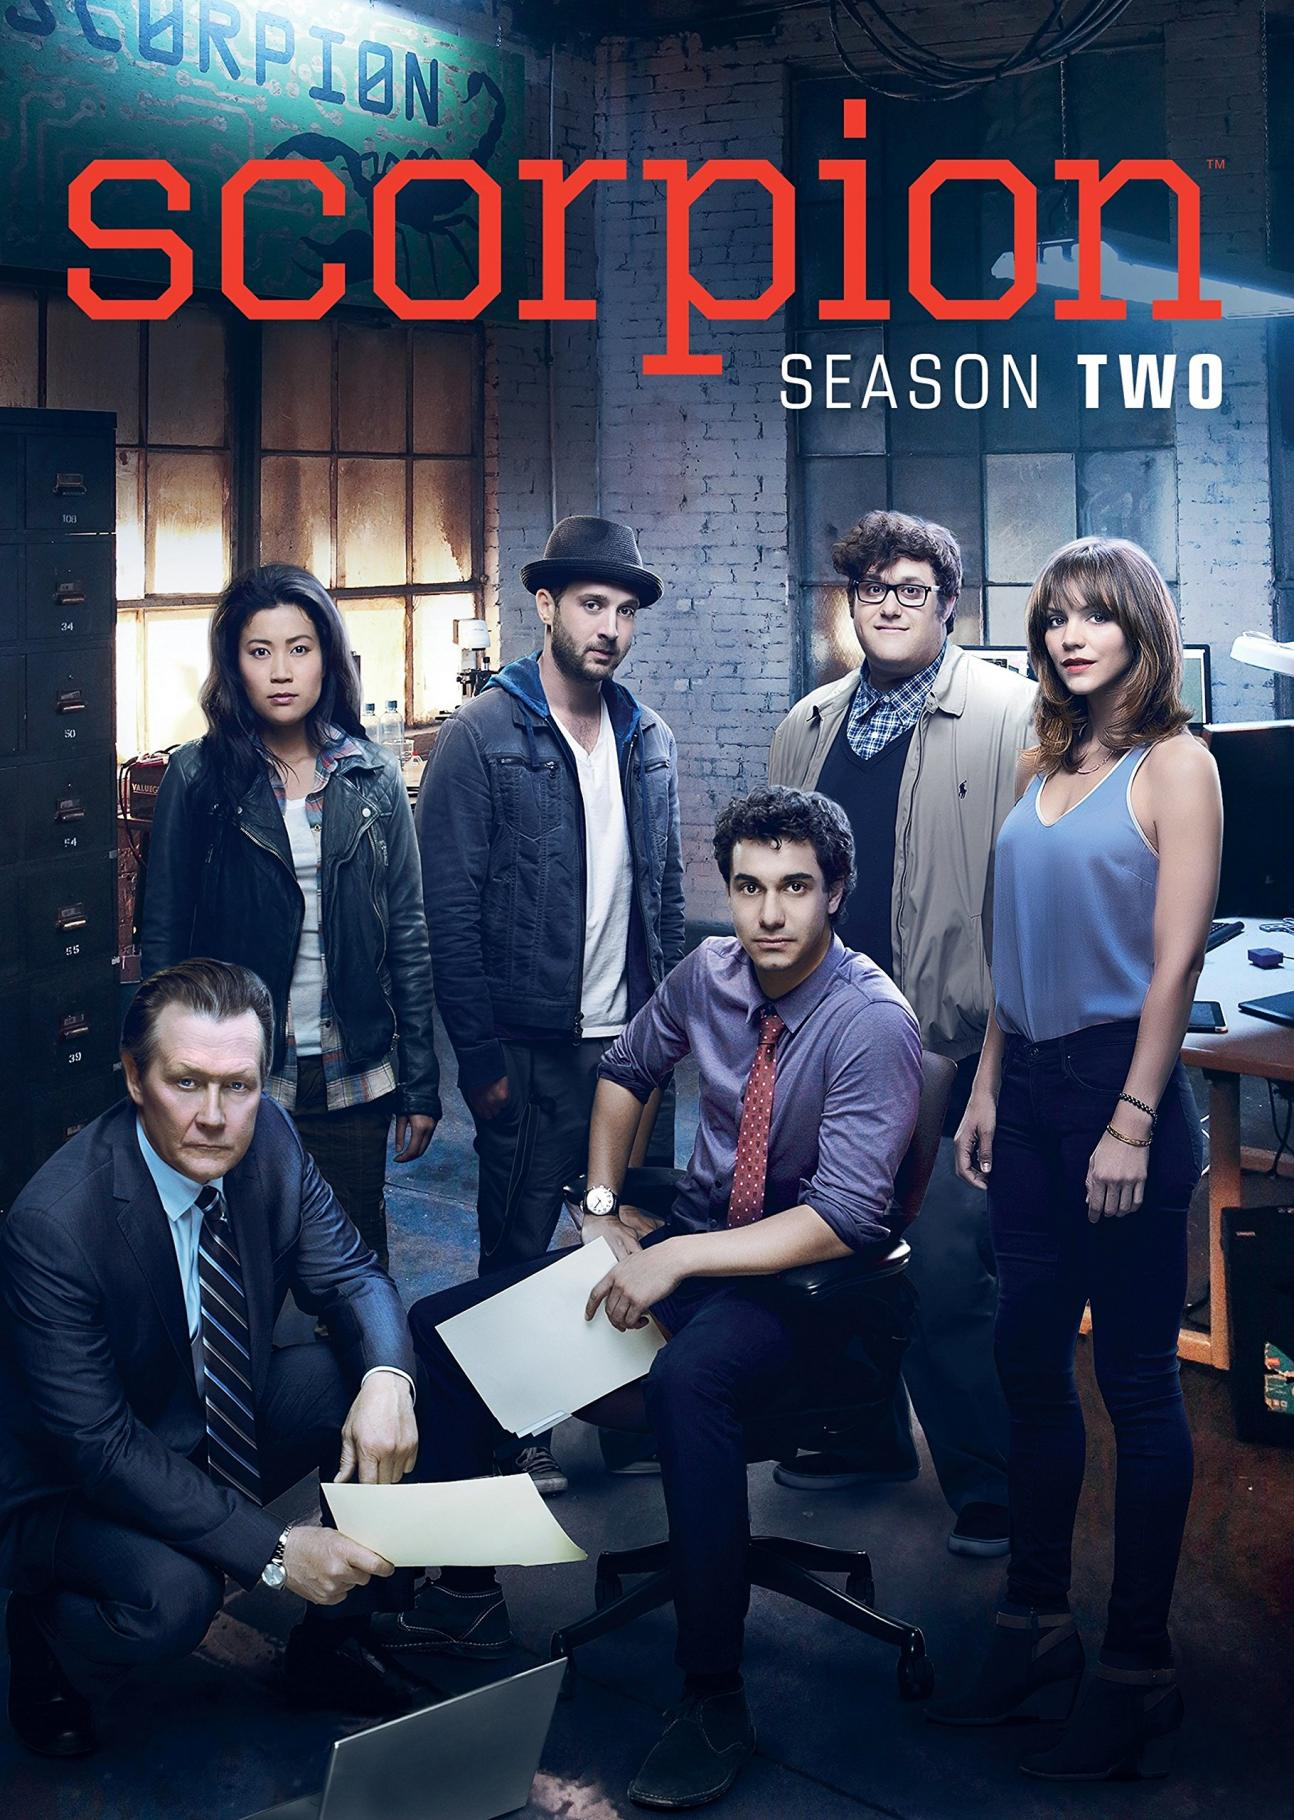 Scorpion. Season two